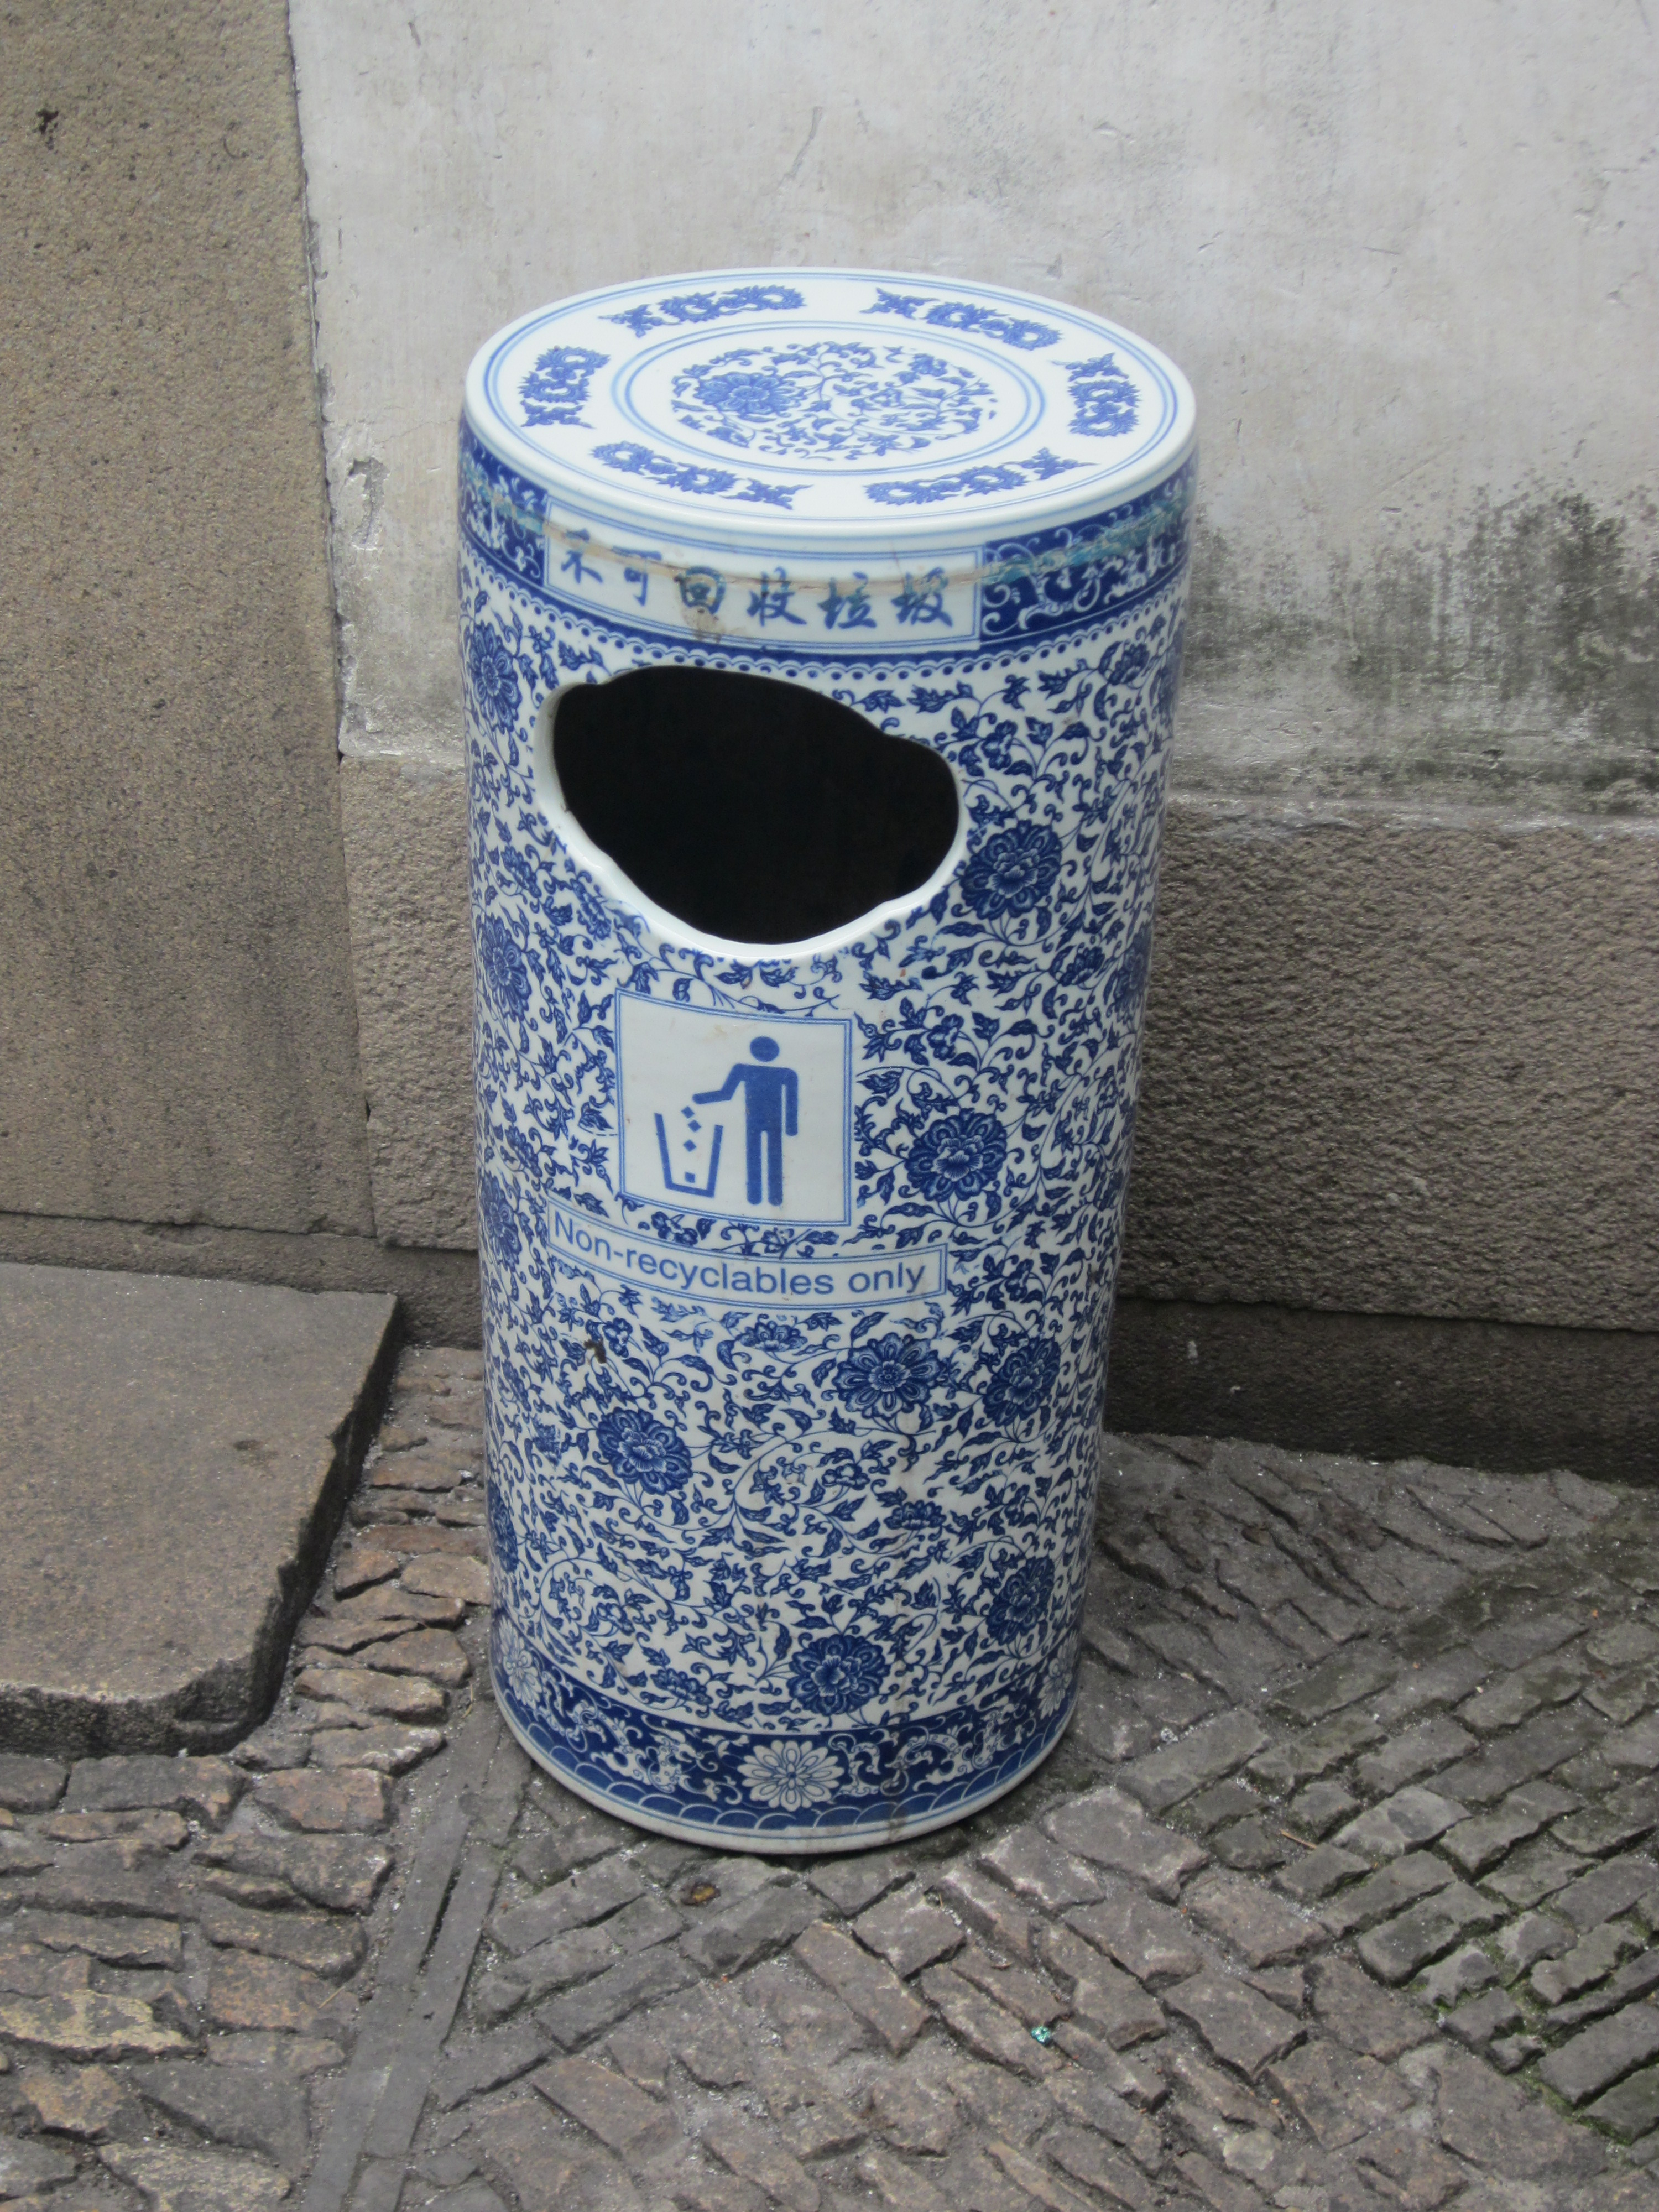 Attractive Trash Cans China Day 5 Suzhou Venice Of The East Silk Factory And